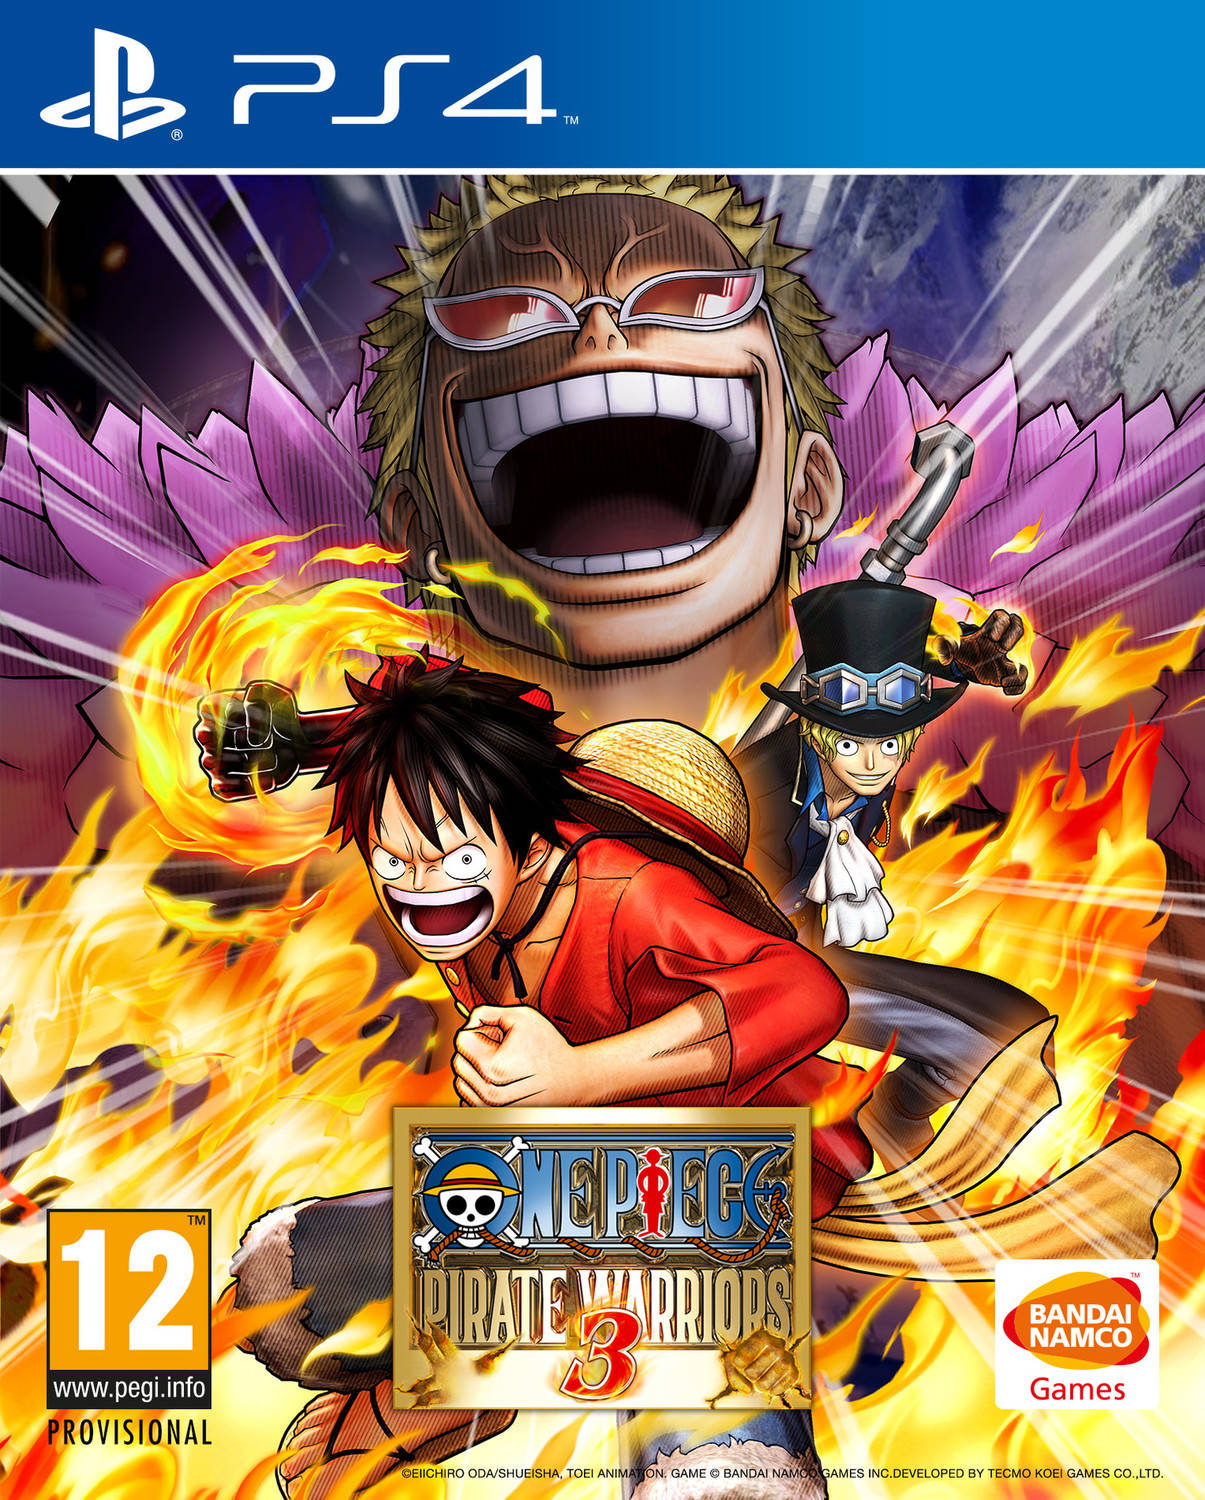 One Piece Pirate Warriors 3 Playstation 4 Ps4 Game Sony Burning Blood